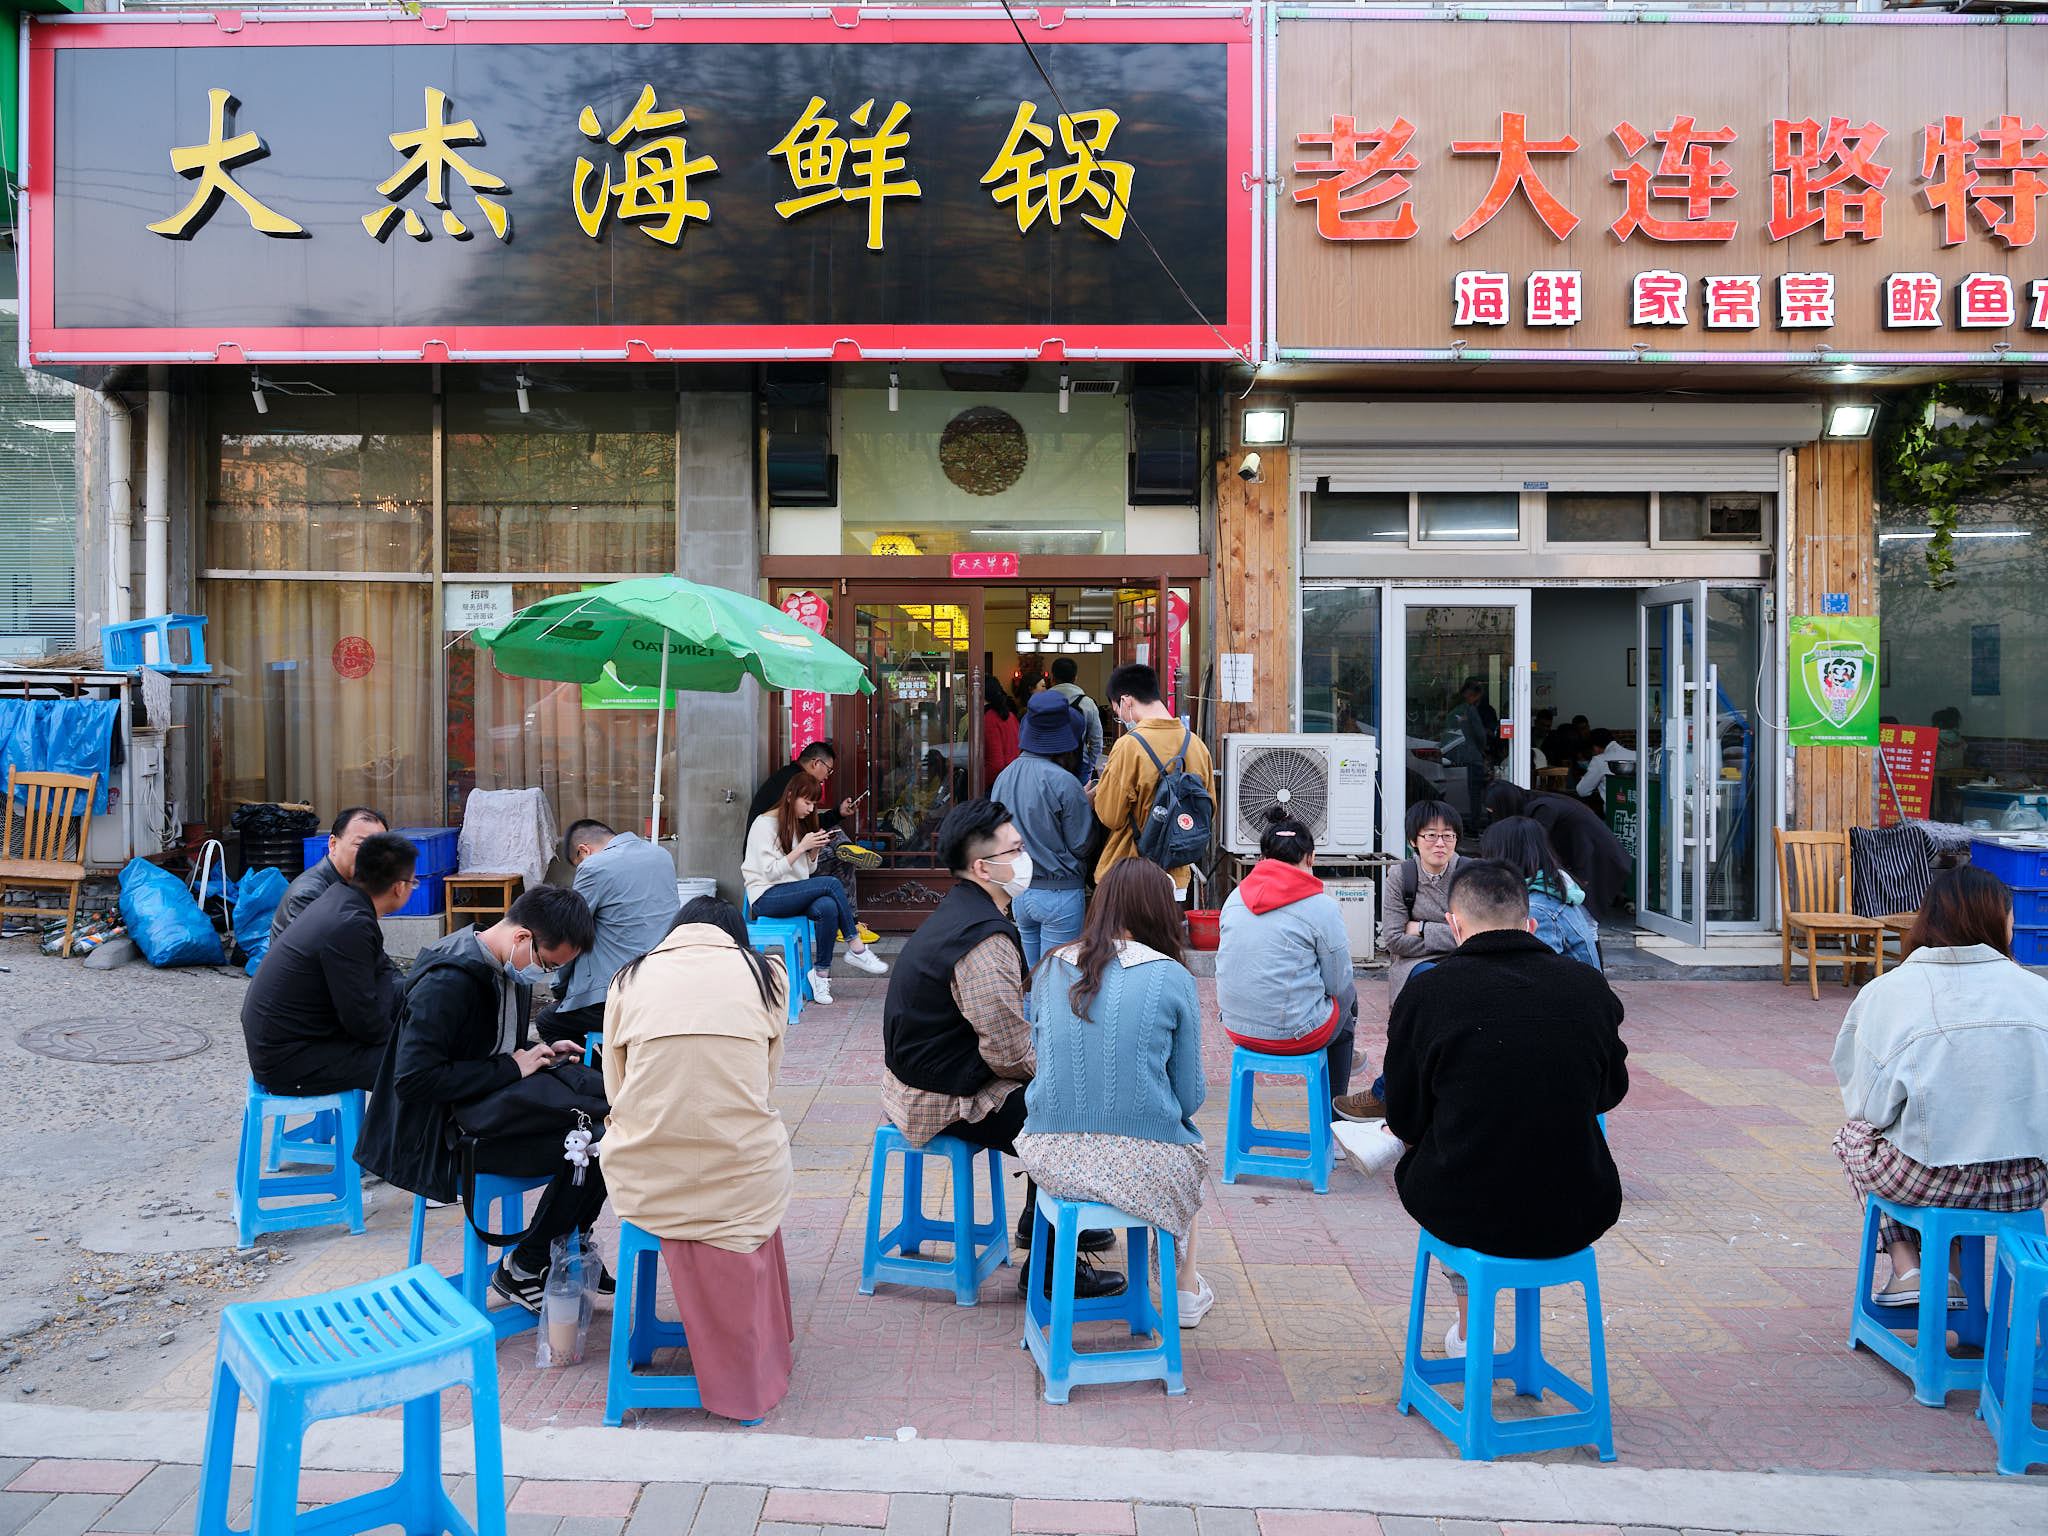 People waiting outside a famous seafood restaurant in Qingdao